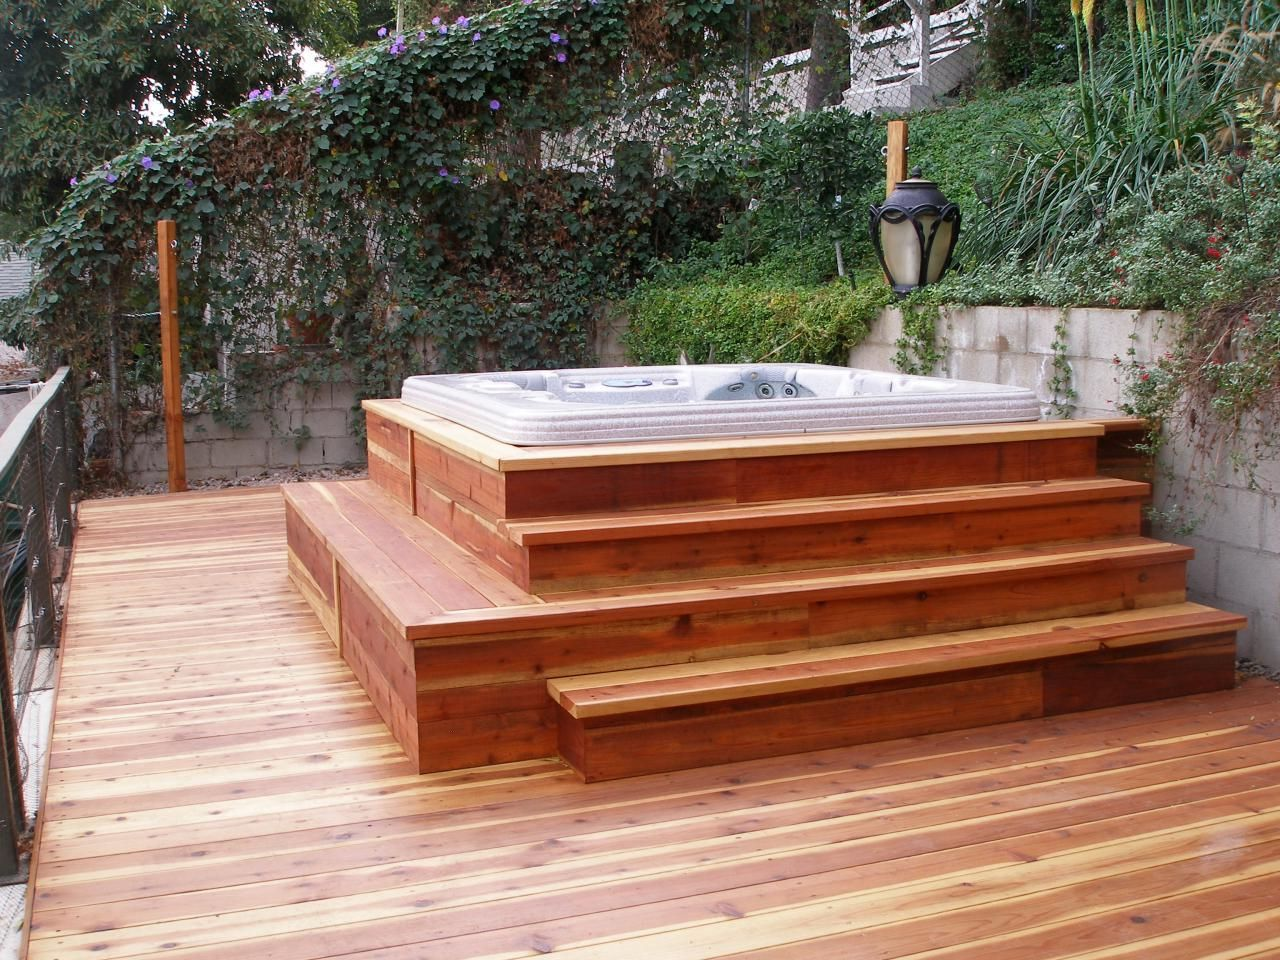 Outdoor backyard deck designs with hot tub ideas for Spa deck design